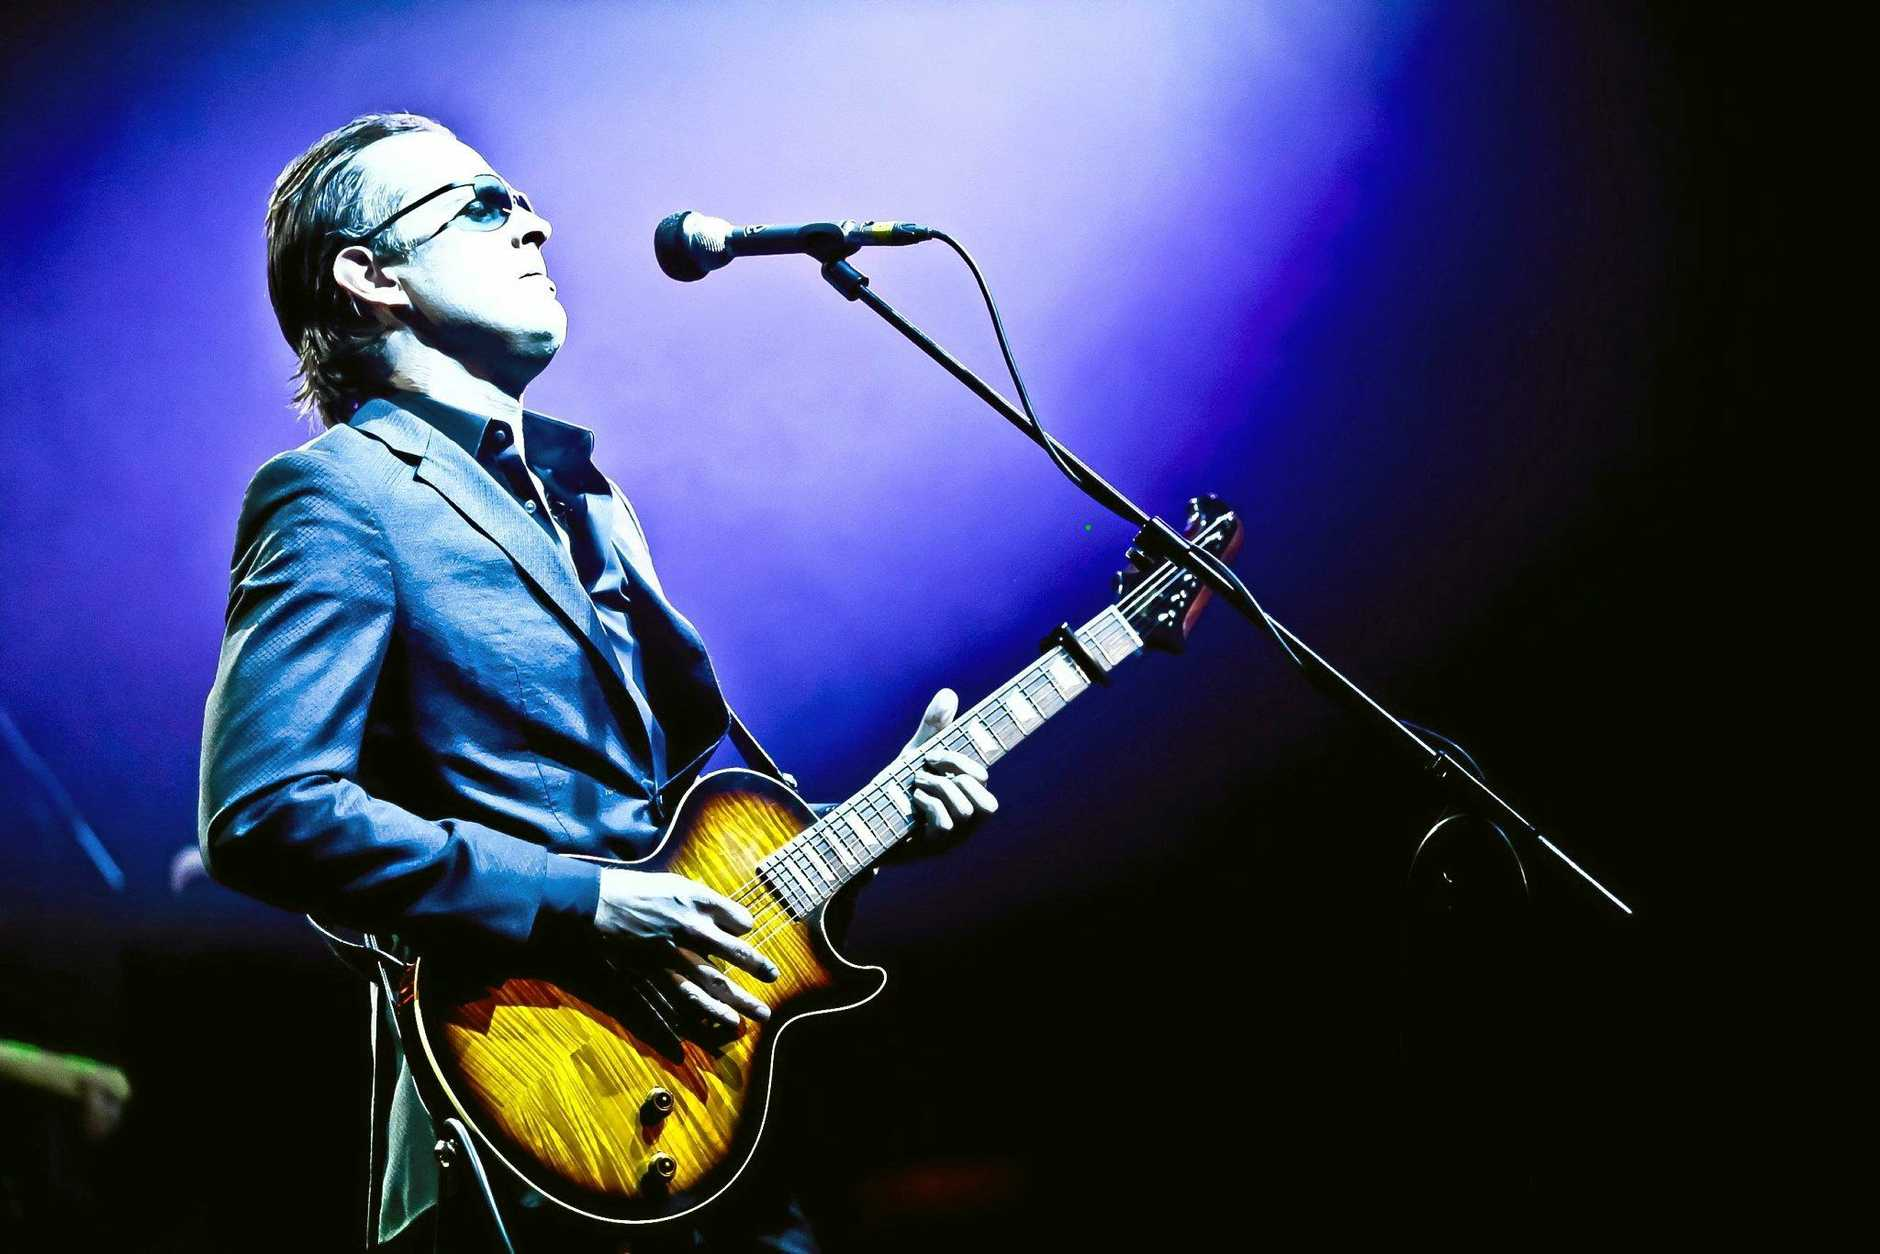 HEADLINER: Joe Bonamassa is an American blues rock guitarist, singer and songwriter.